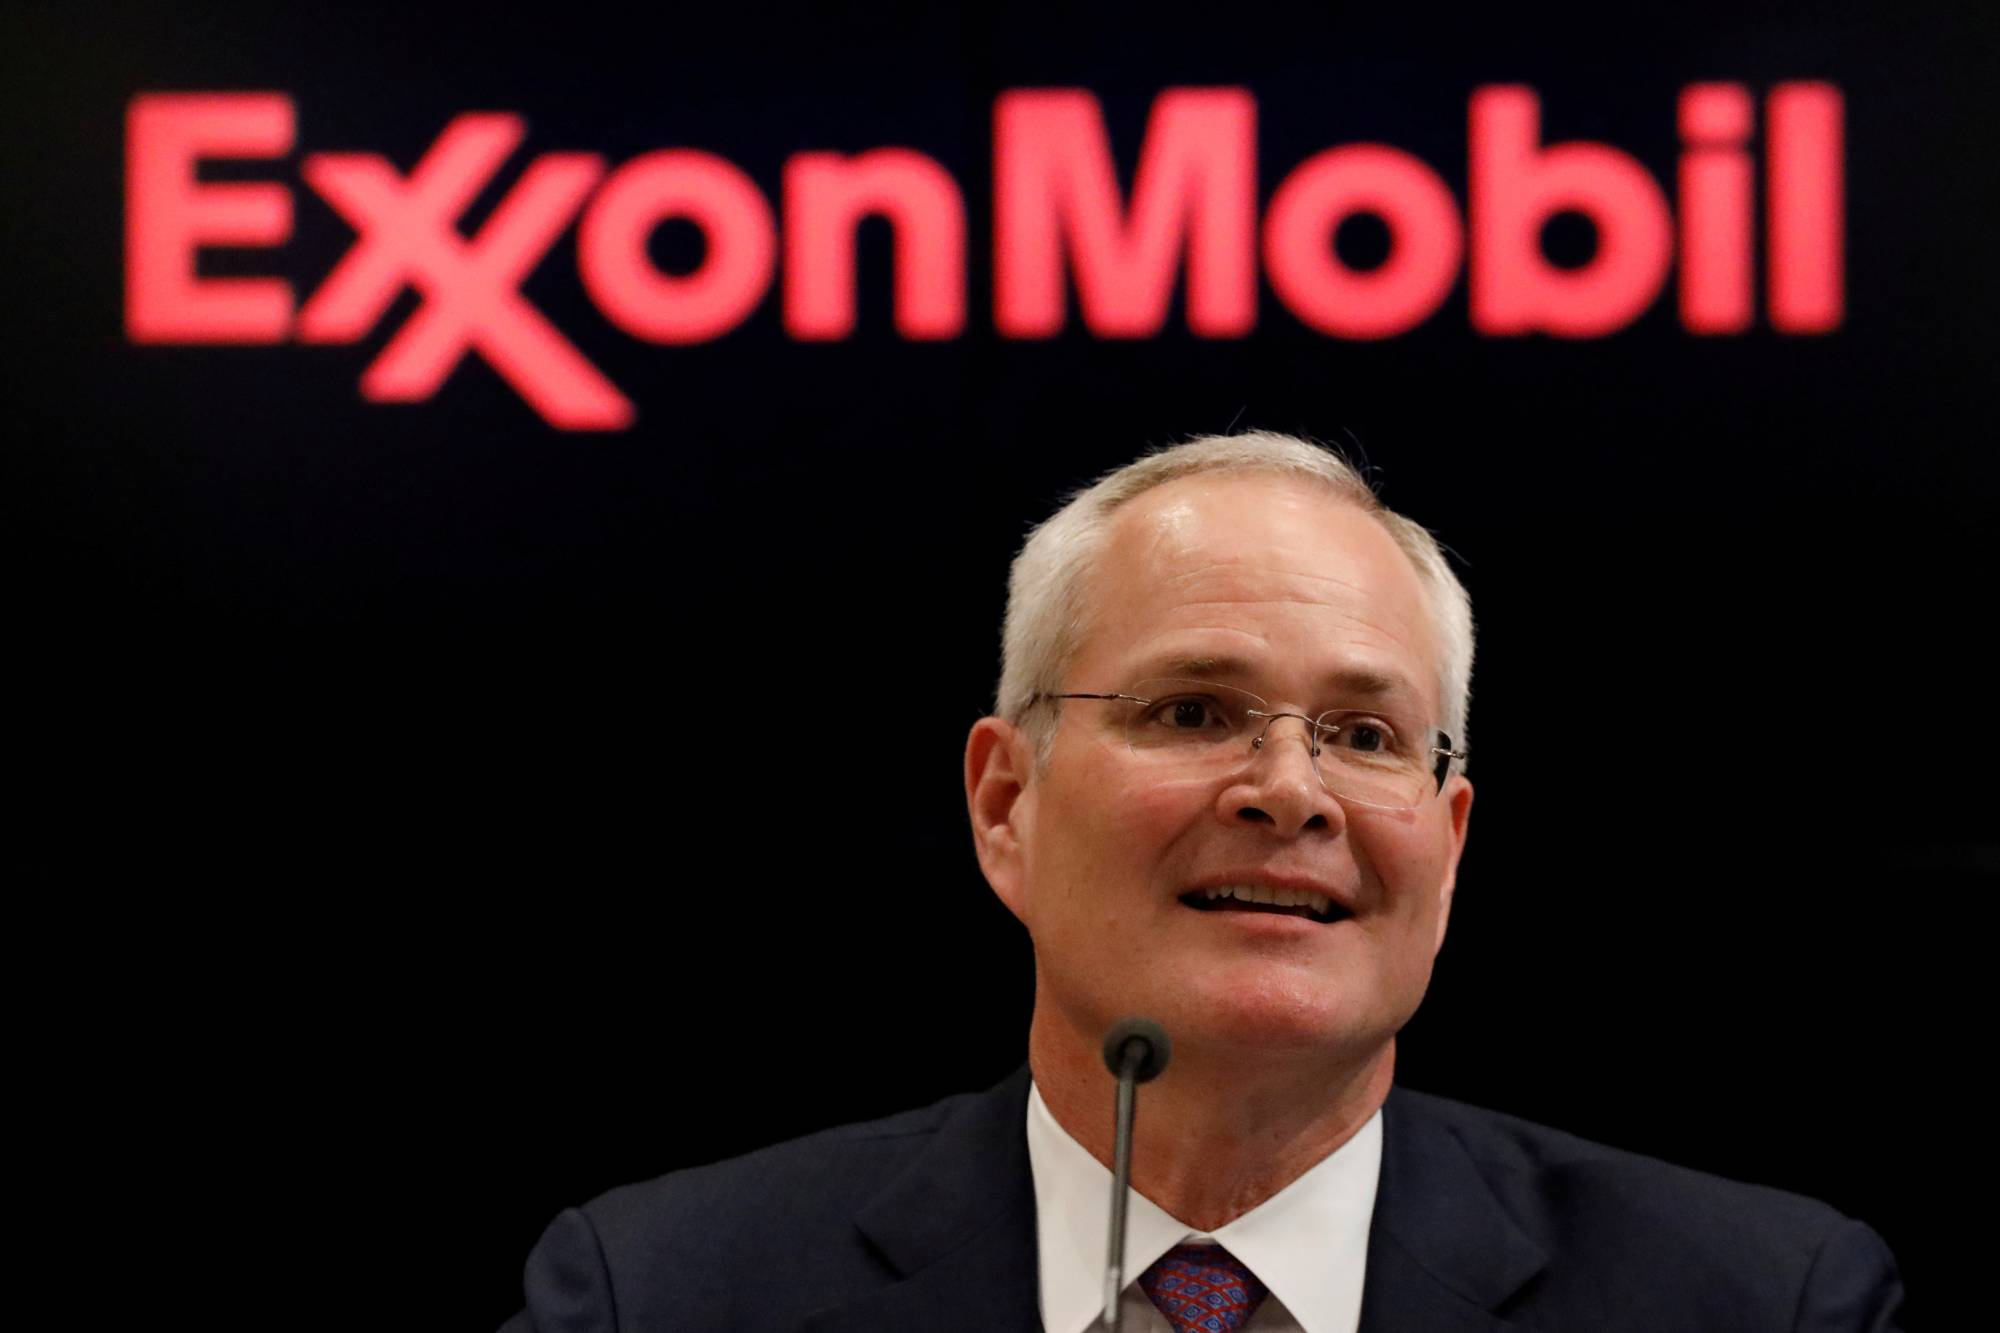 Darren Woods, chairman and CEO of Exxon Mobil Corporation, speaks during a news conference at the New York Stock Exchange in 2017.   REUTERS